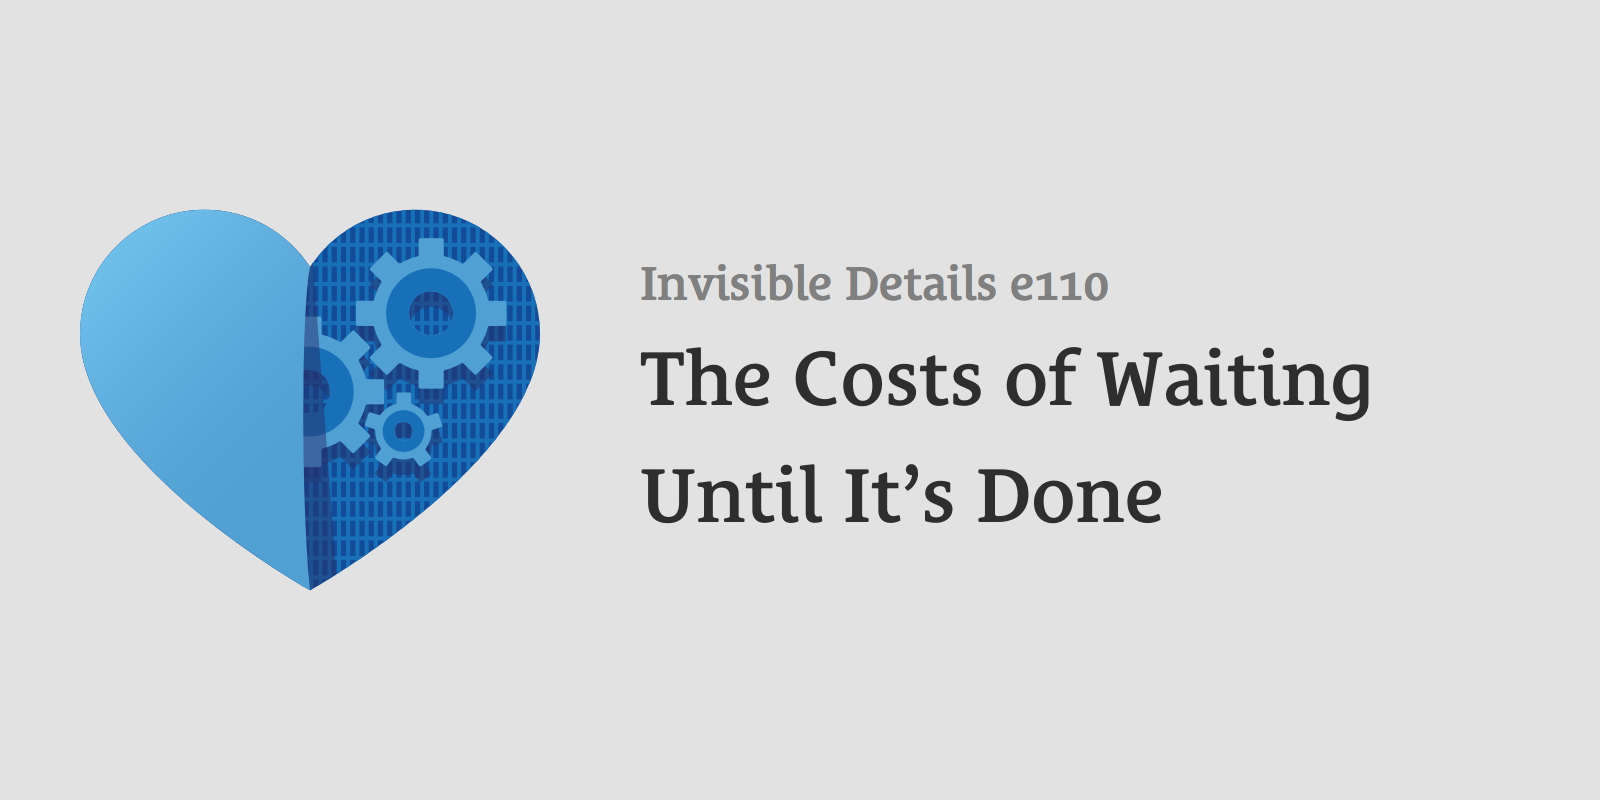 The Costs of Waiting Until It's Done